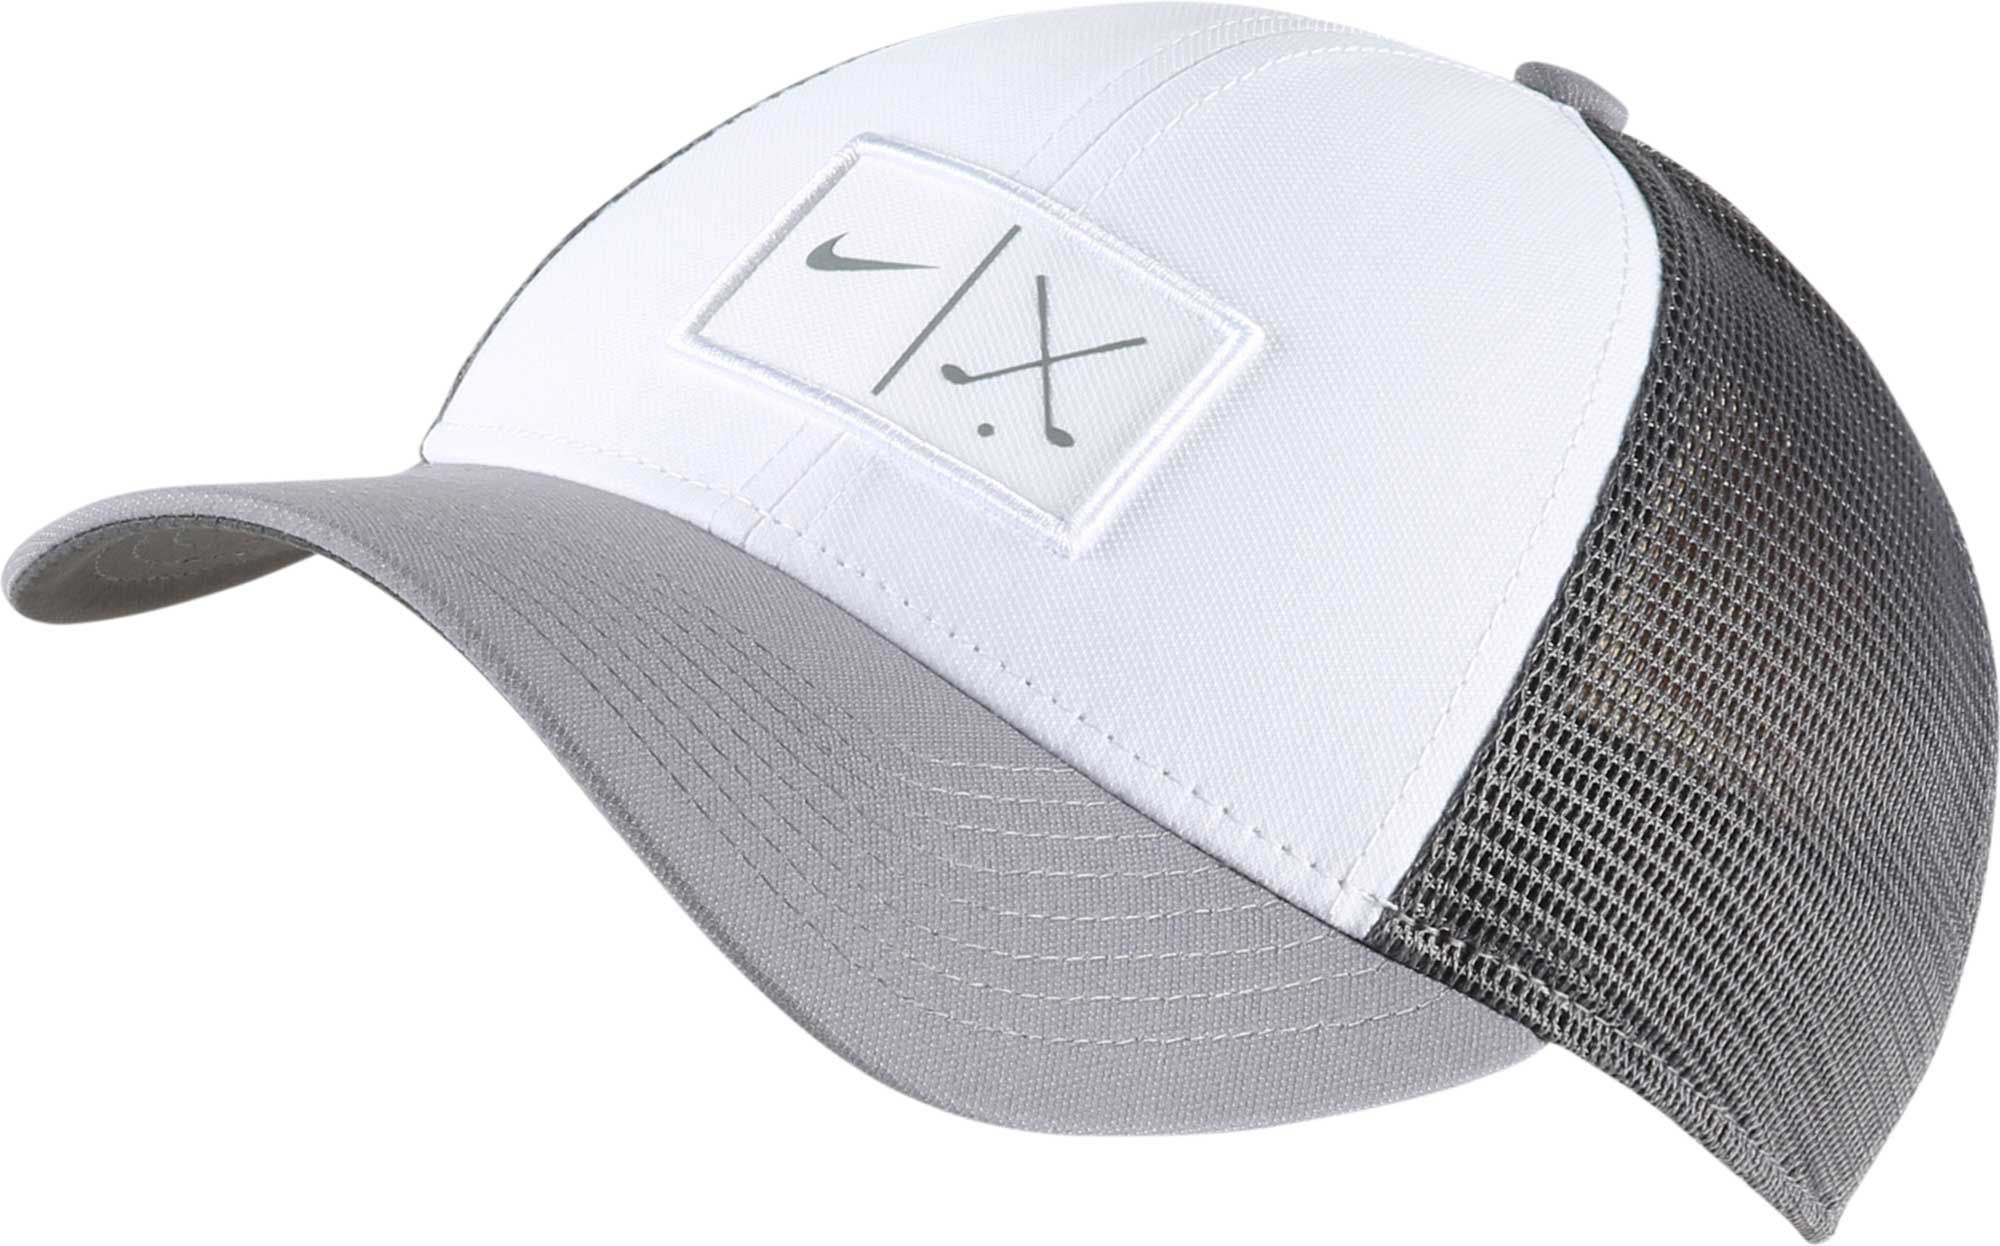 6e7829d7223c7 Nike Men's Mesh Golf Hat | Products | Golf outfit, Baseball hats, Golf